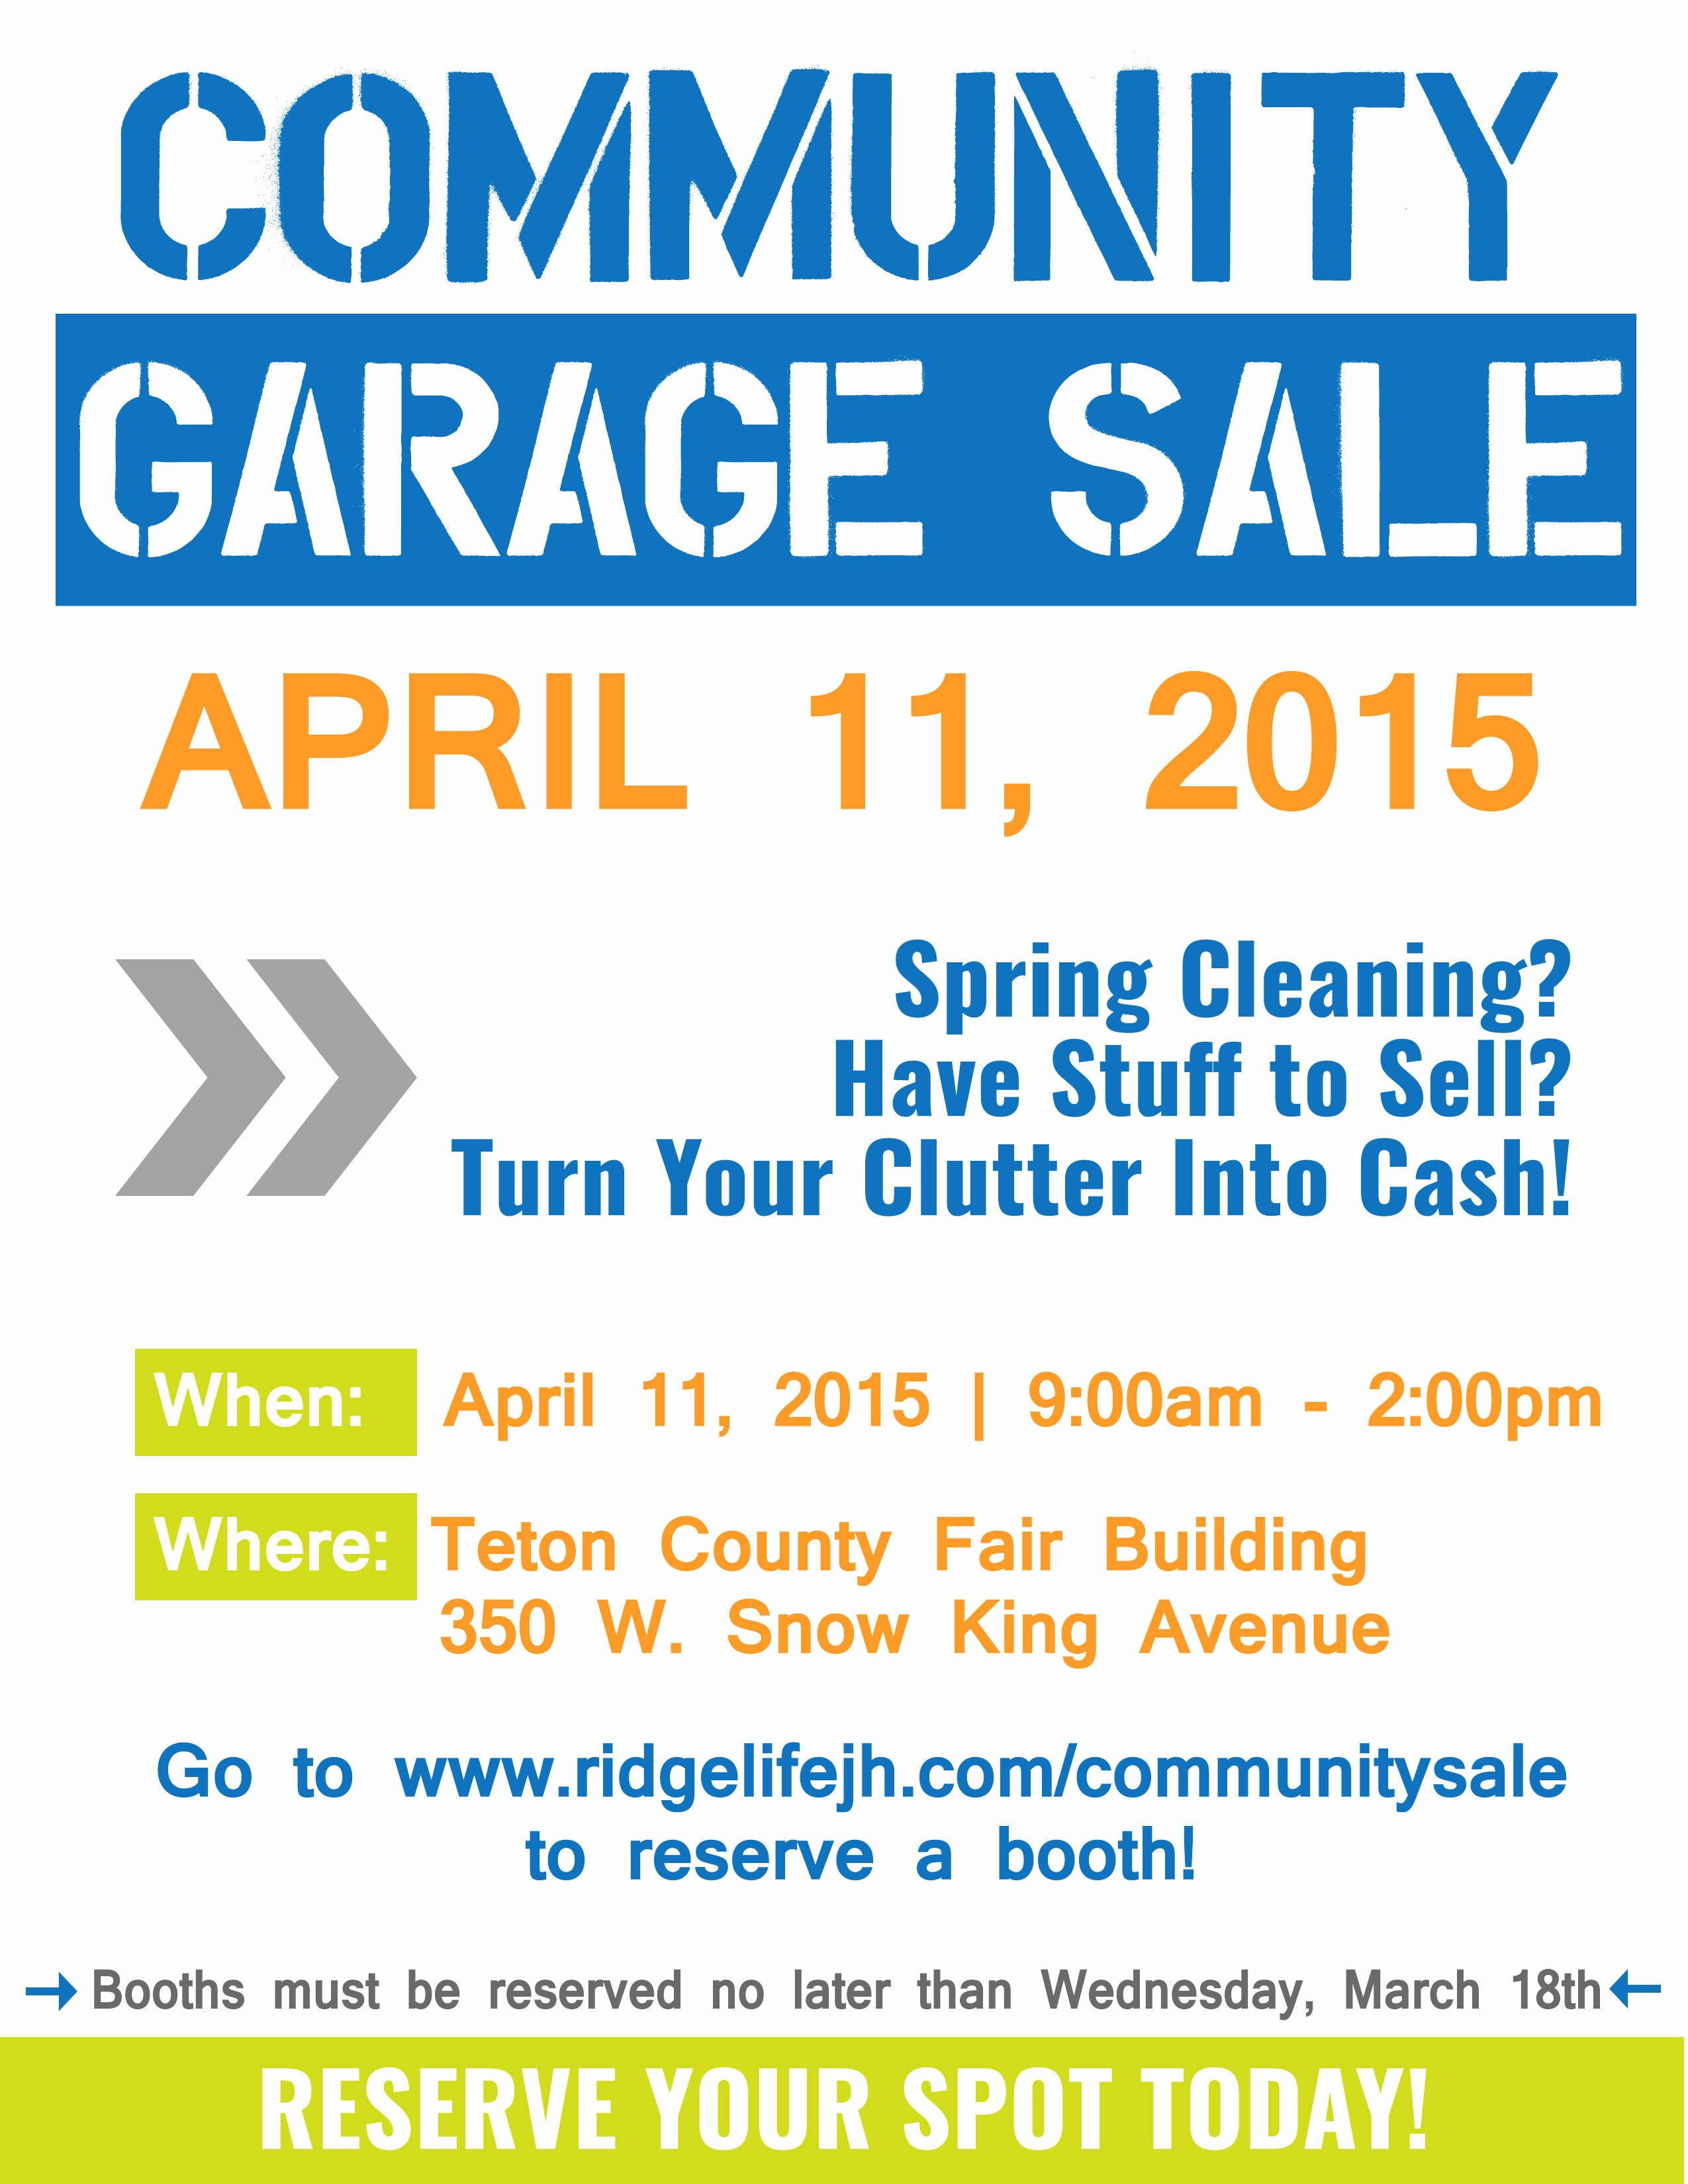 Community Yard Sale Sign Template Unique Garage Sale Flyer Template Besttemplate123 2kdnhxwb 15